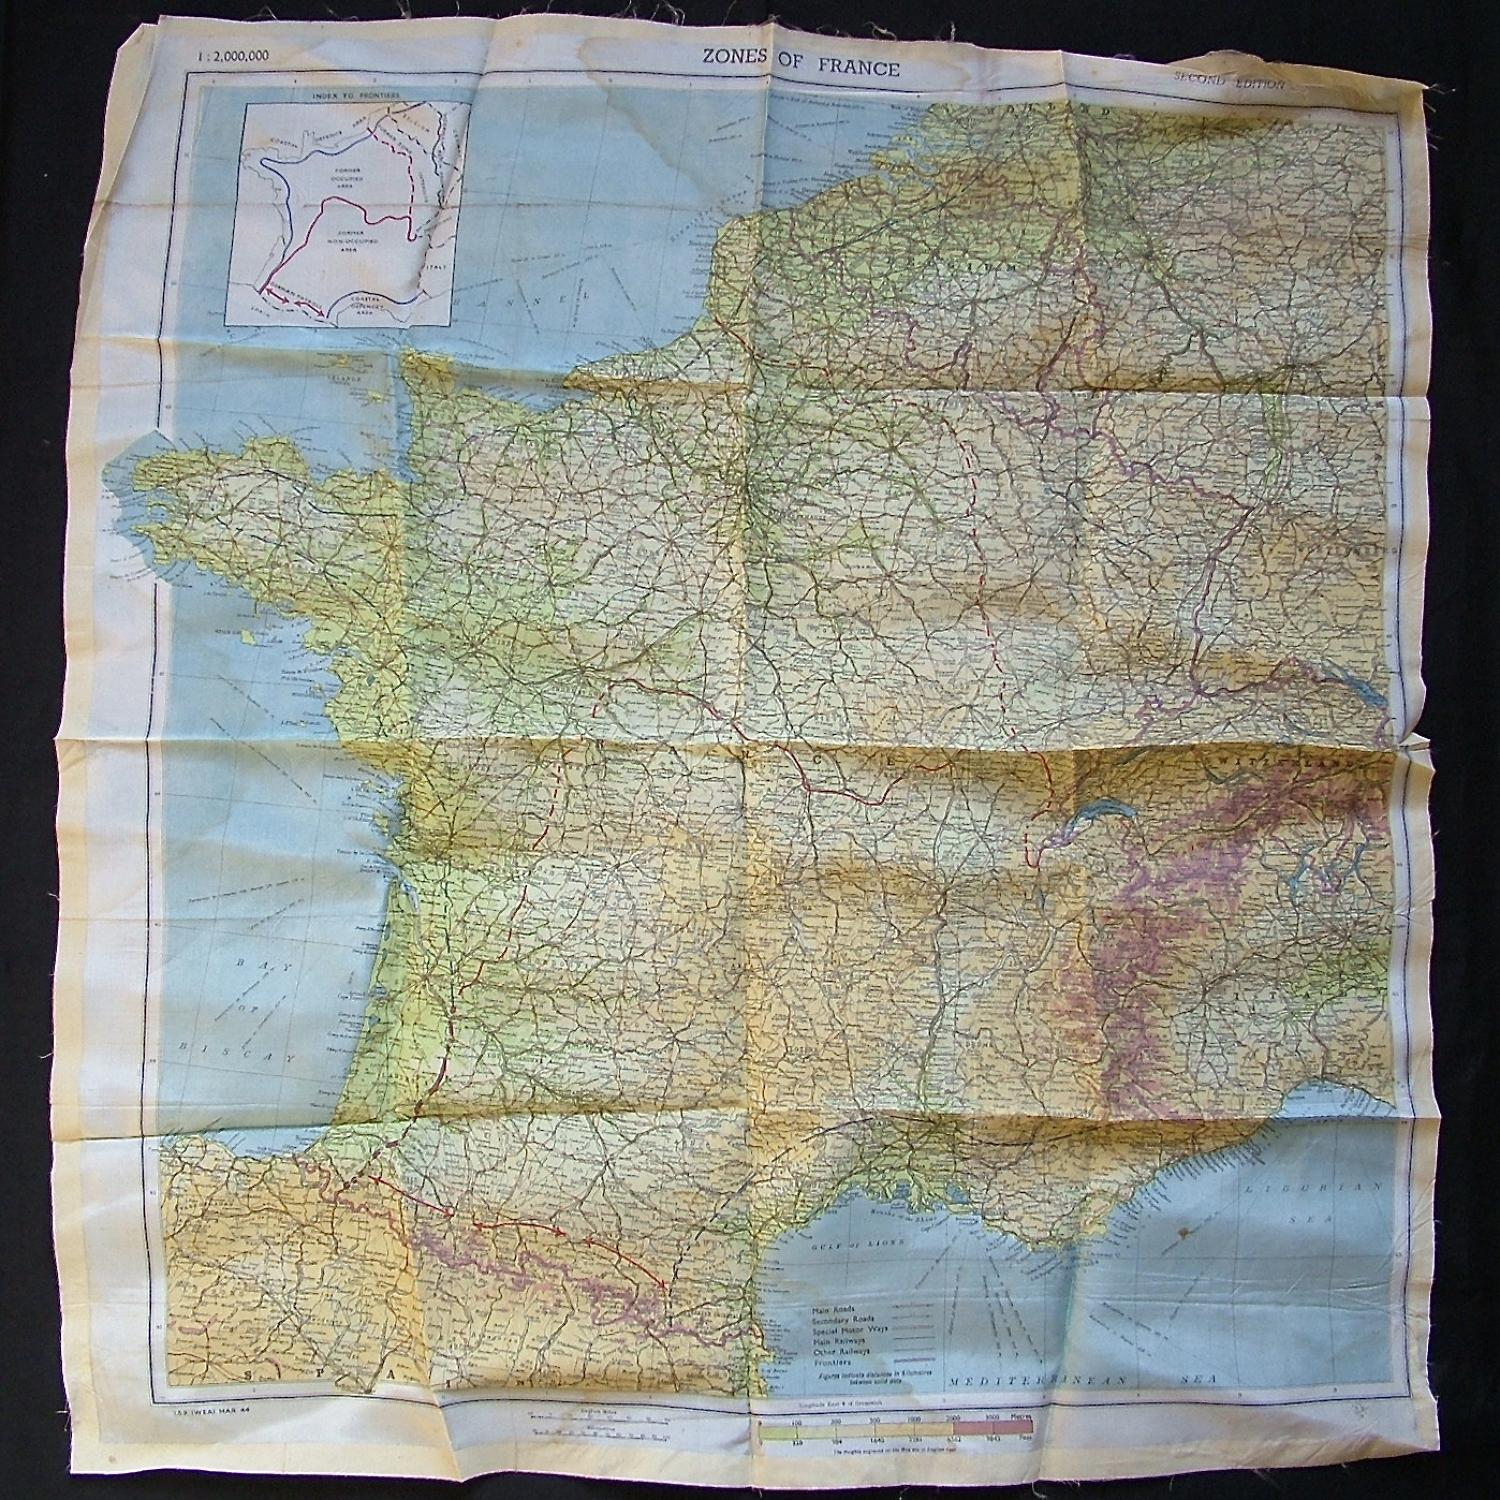 RAF escape & evasion map - Zones of France